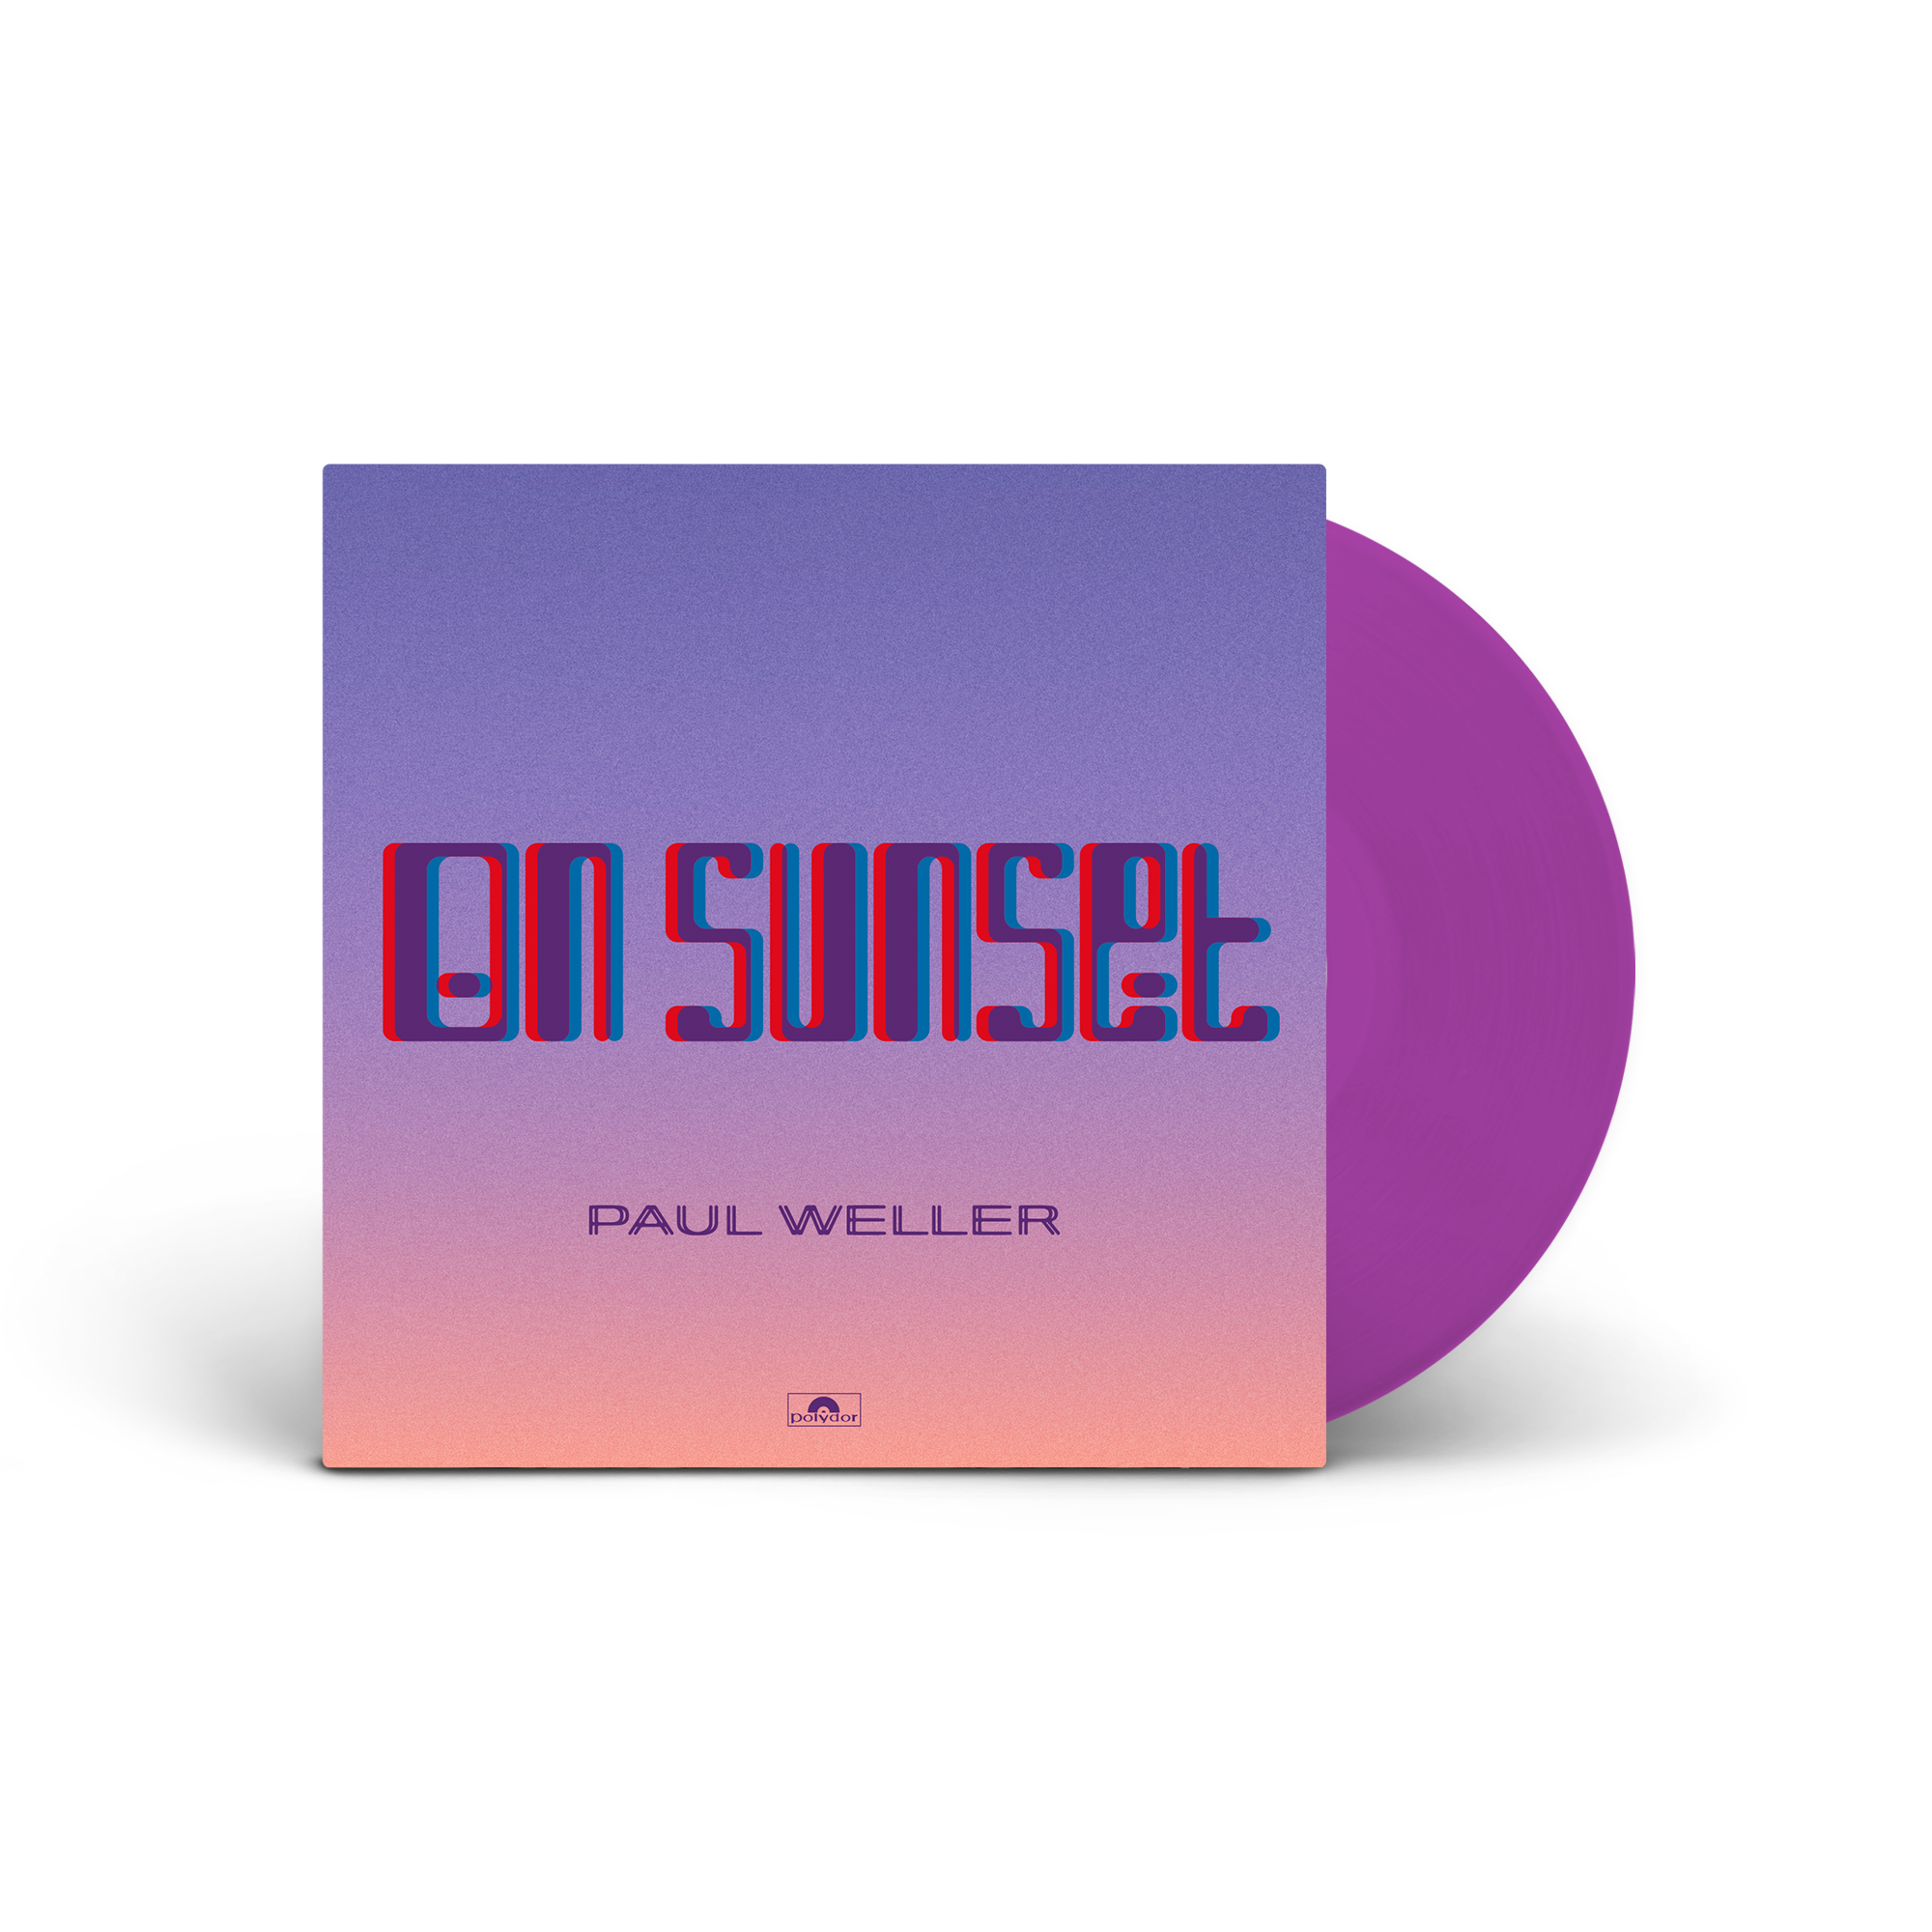 PAUL WELLER – On Sunset – 2LP- Limited Edition Purple Vinyl [JULY 3rd]